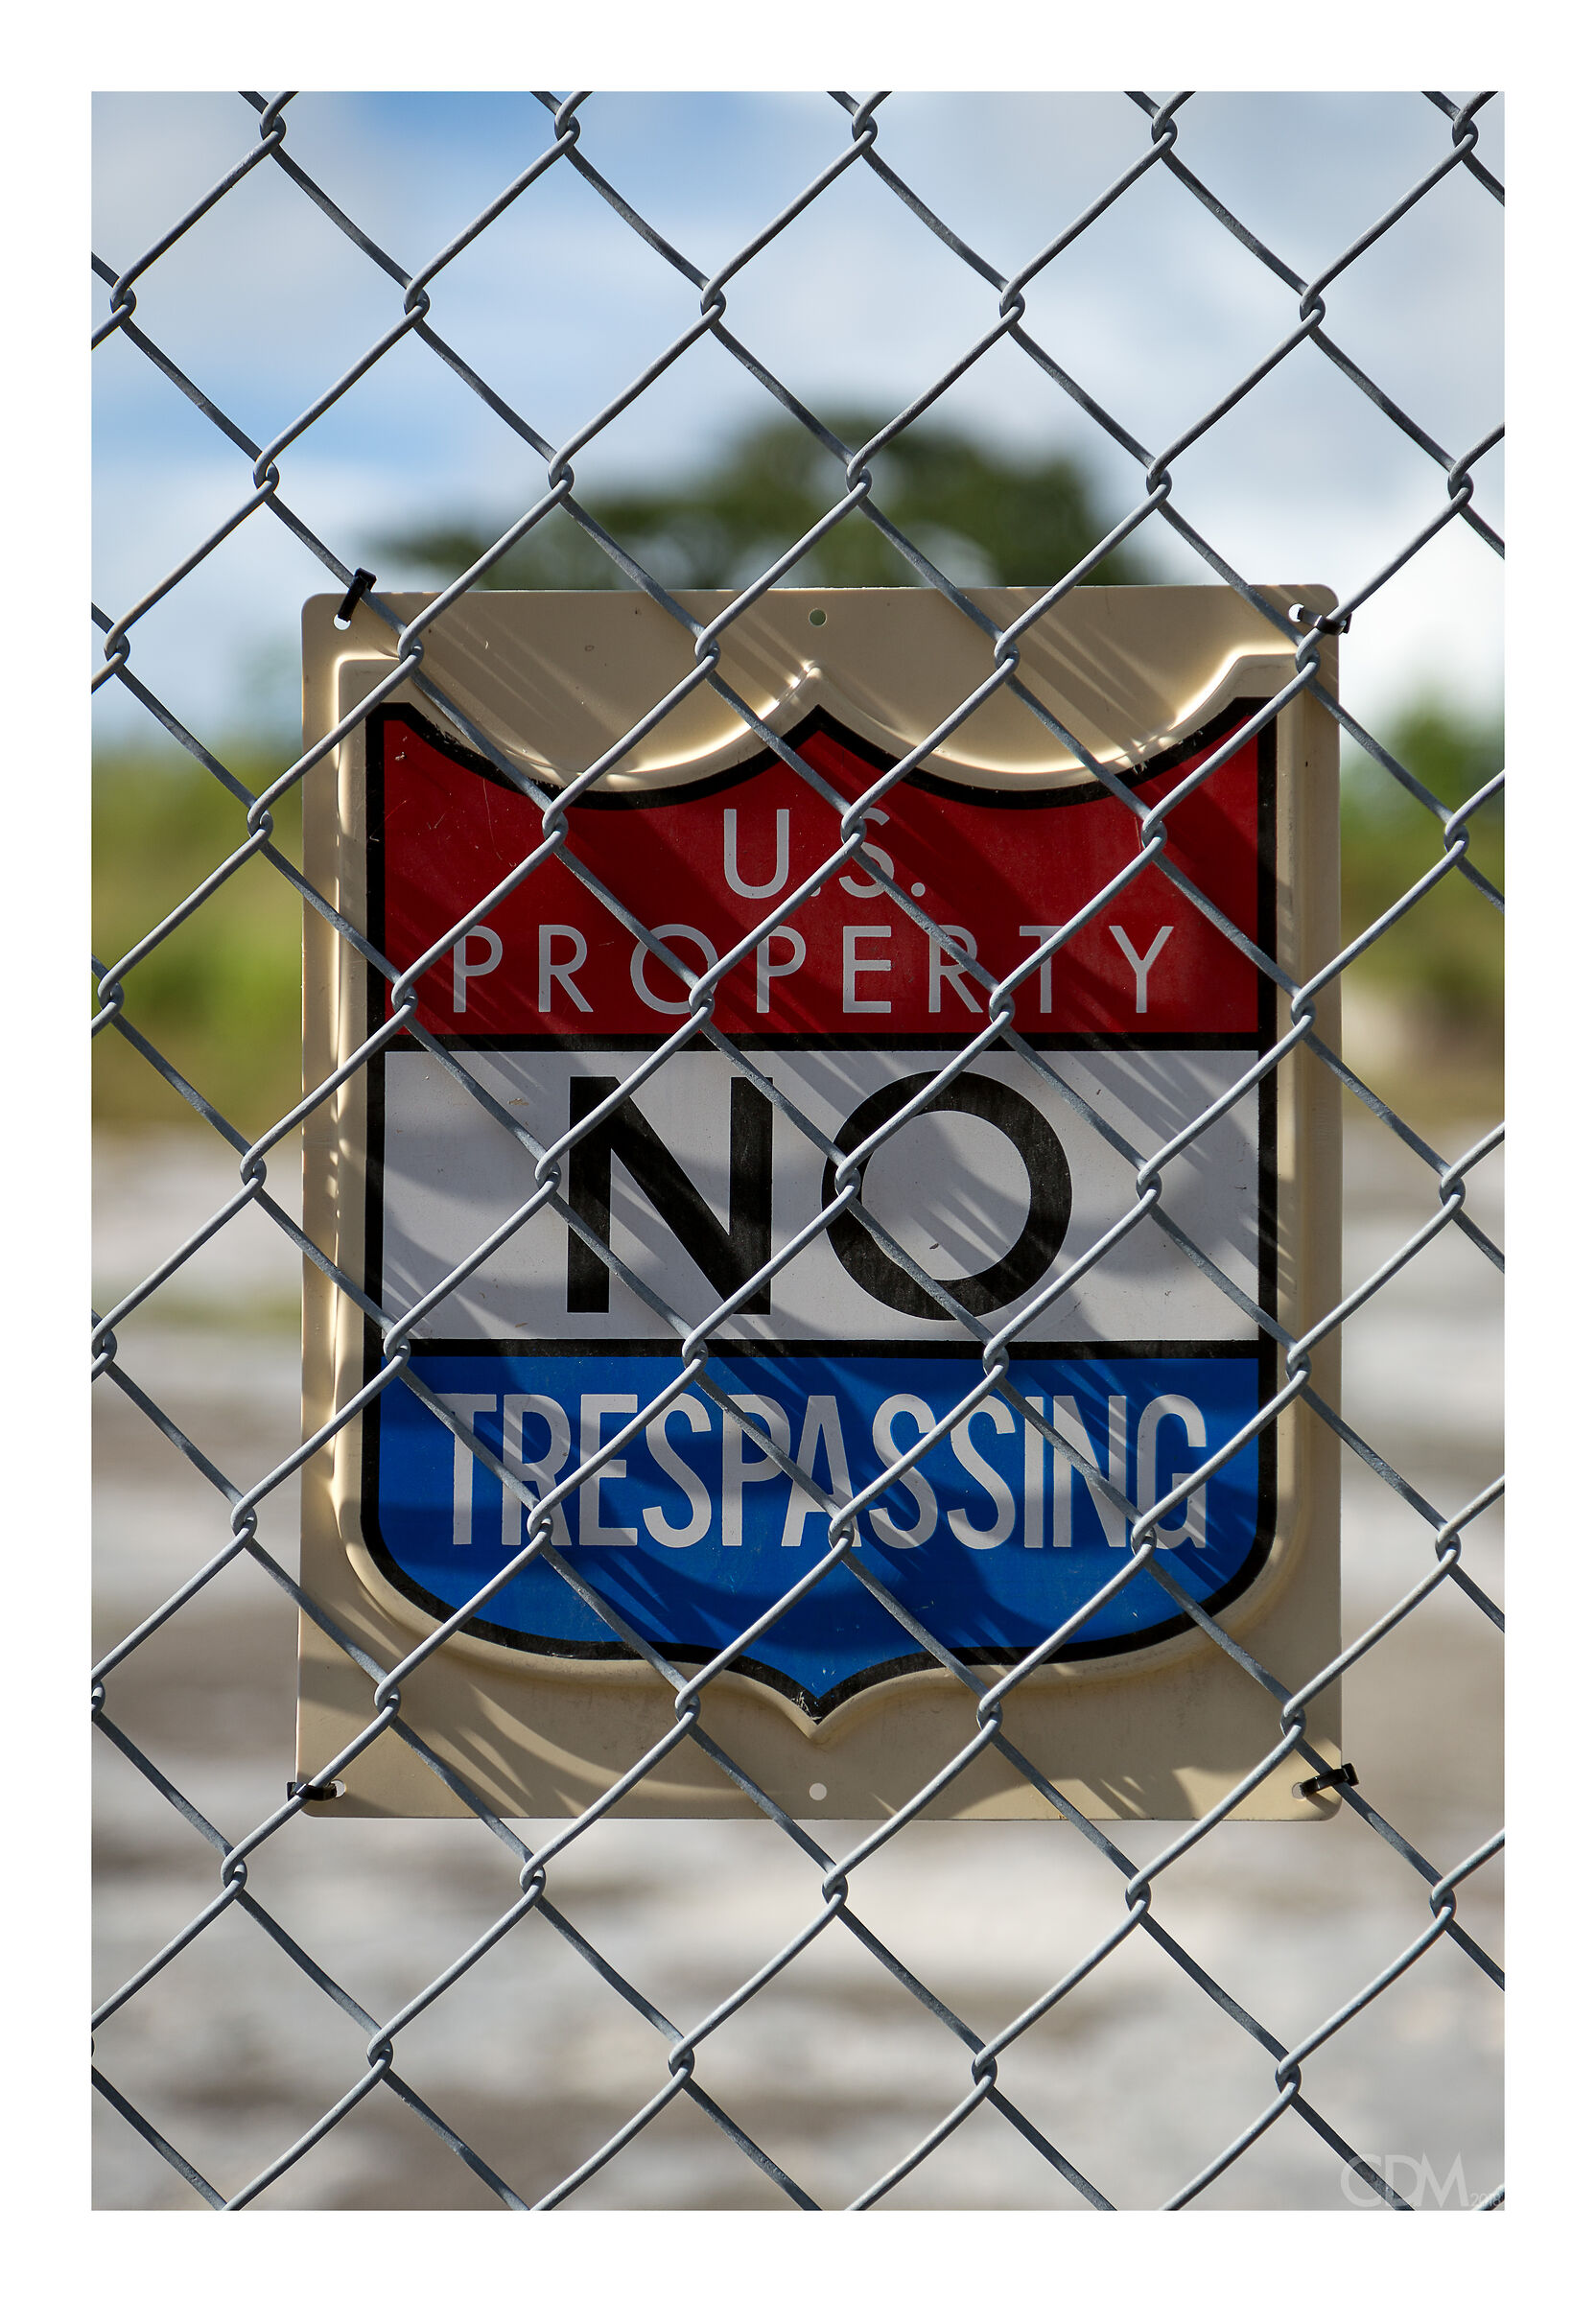 No trespassing...